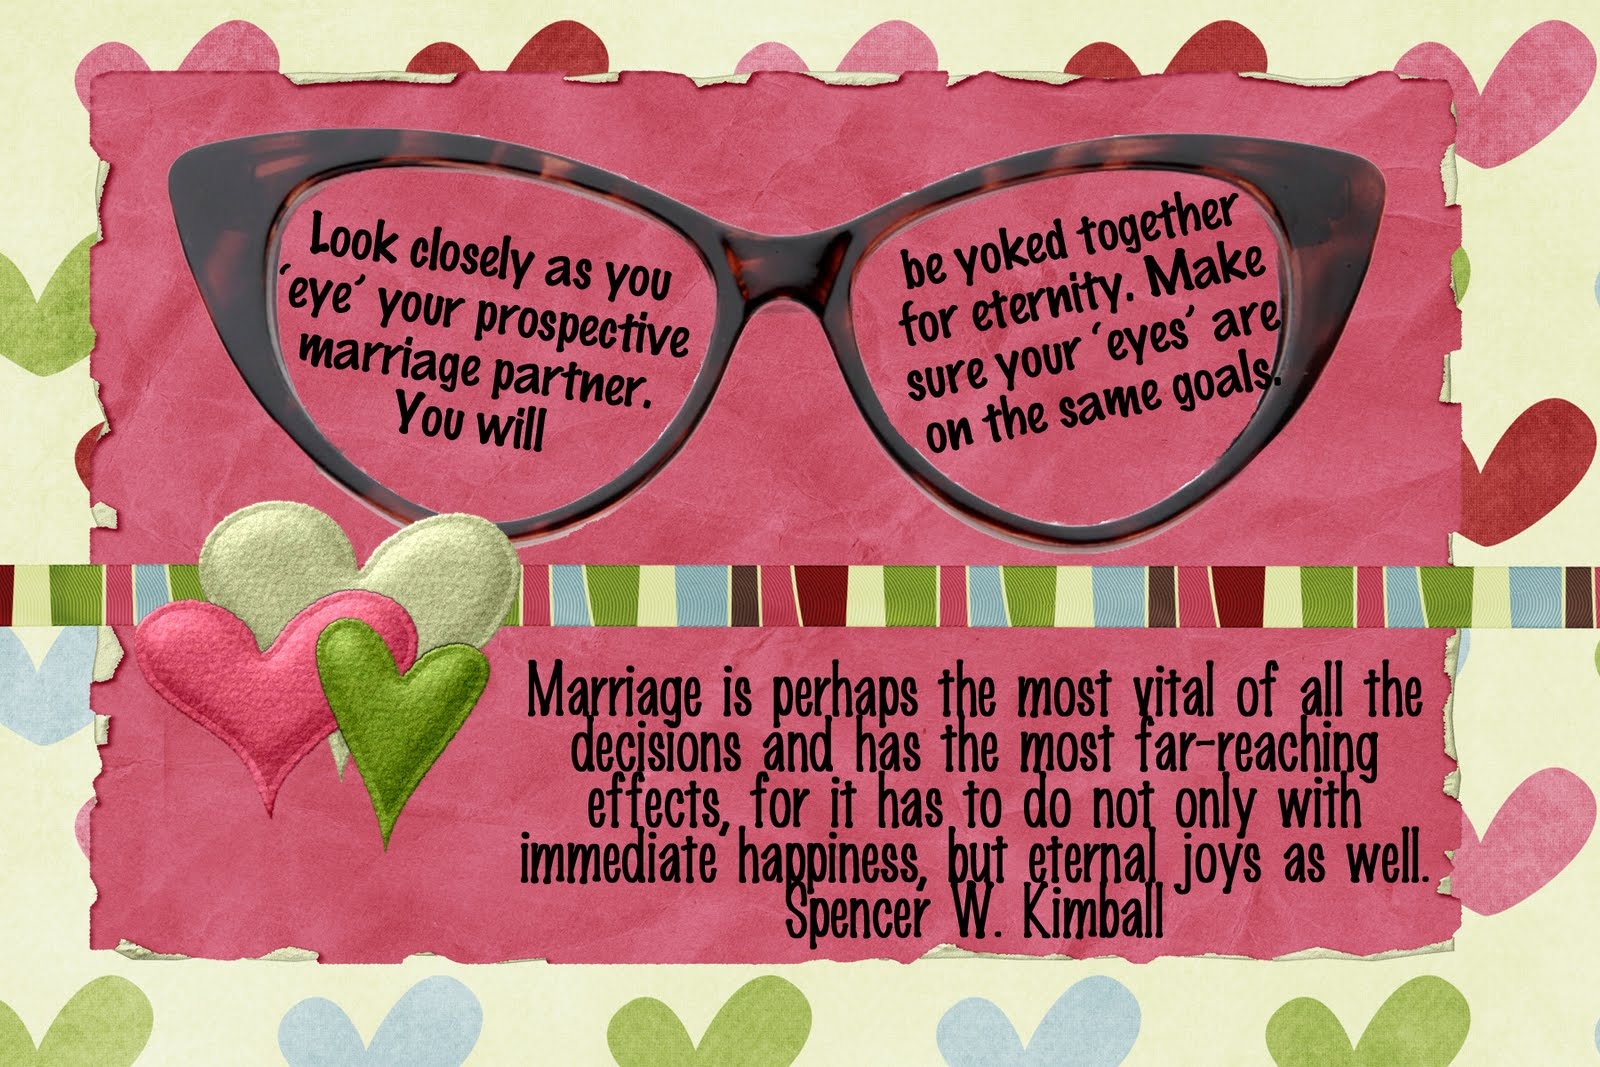 Reproducci n asexual marriage